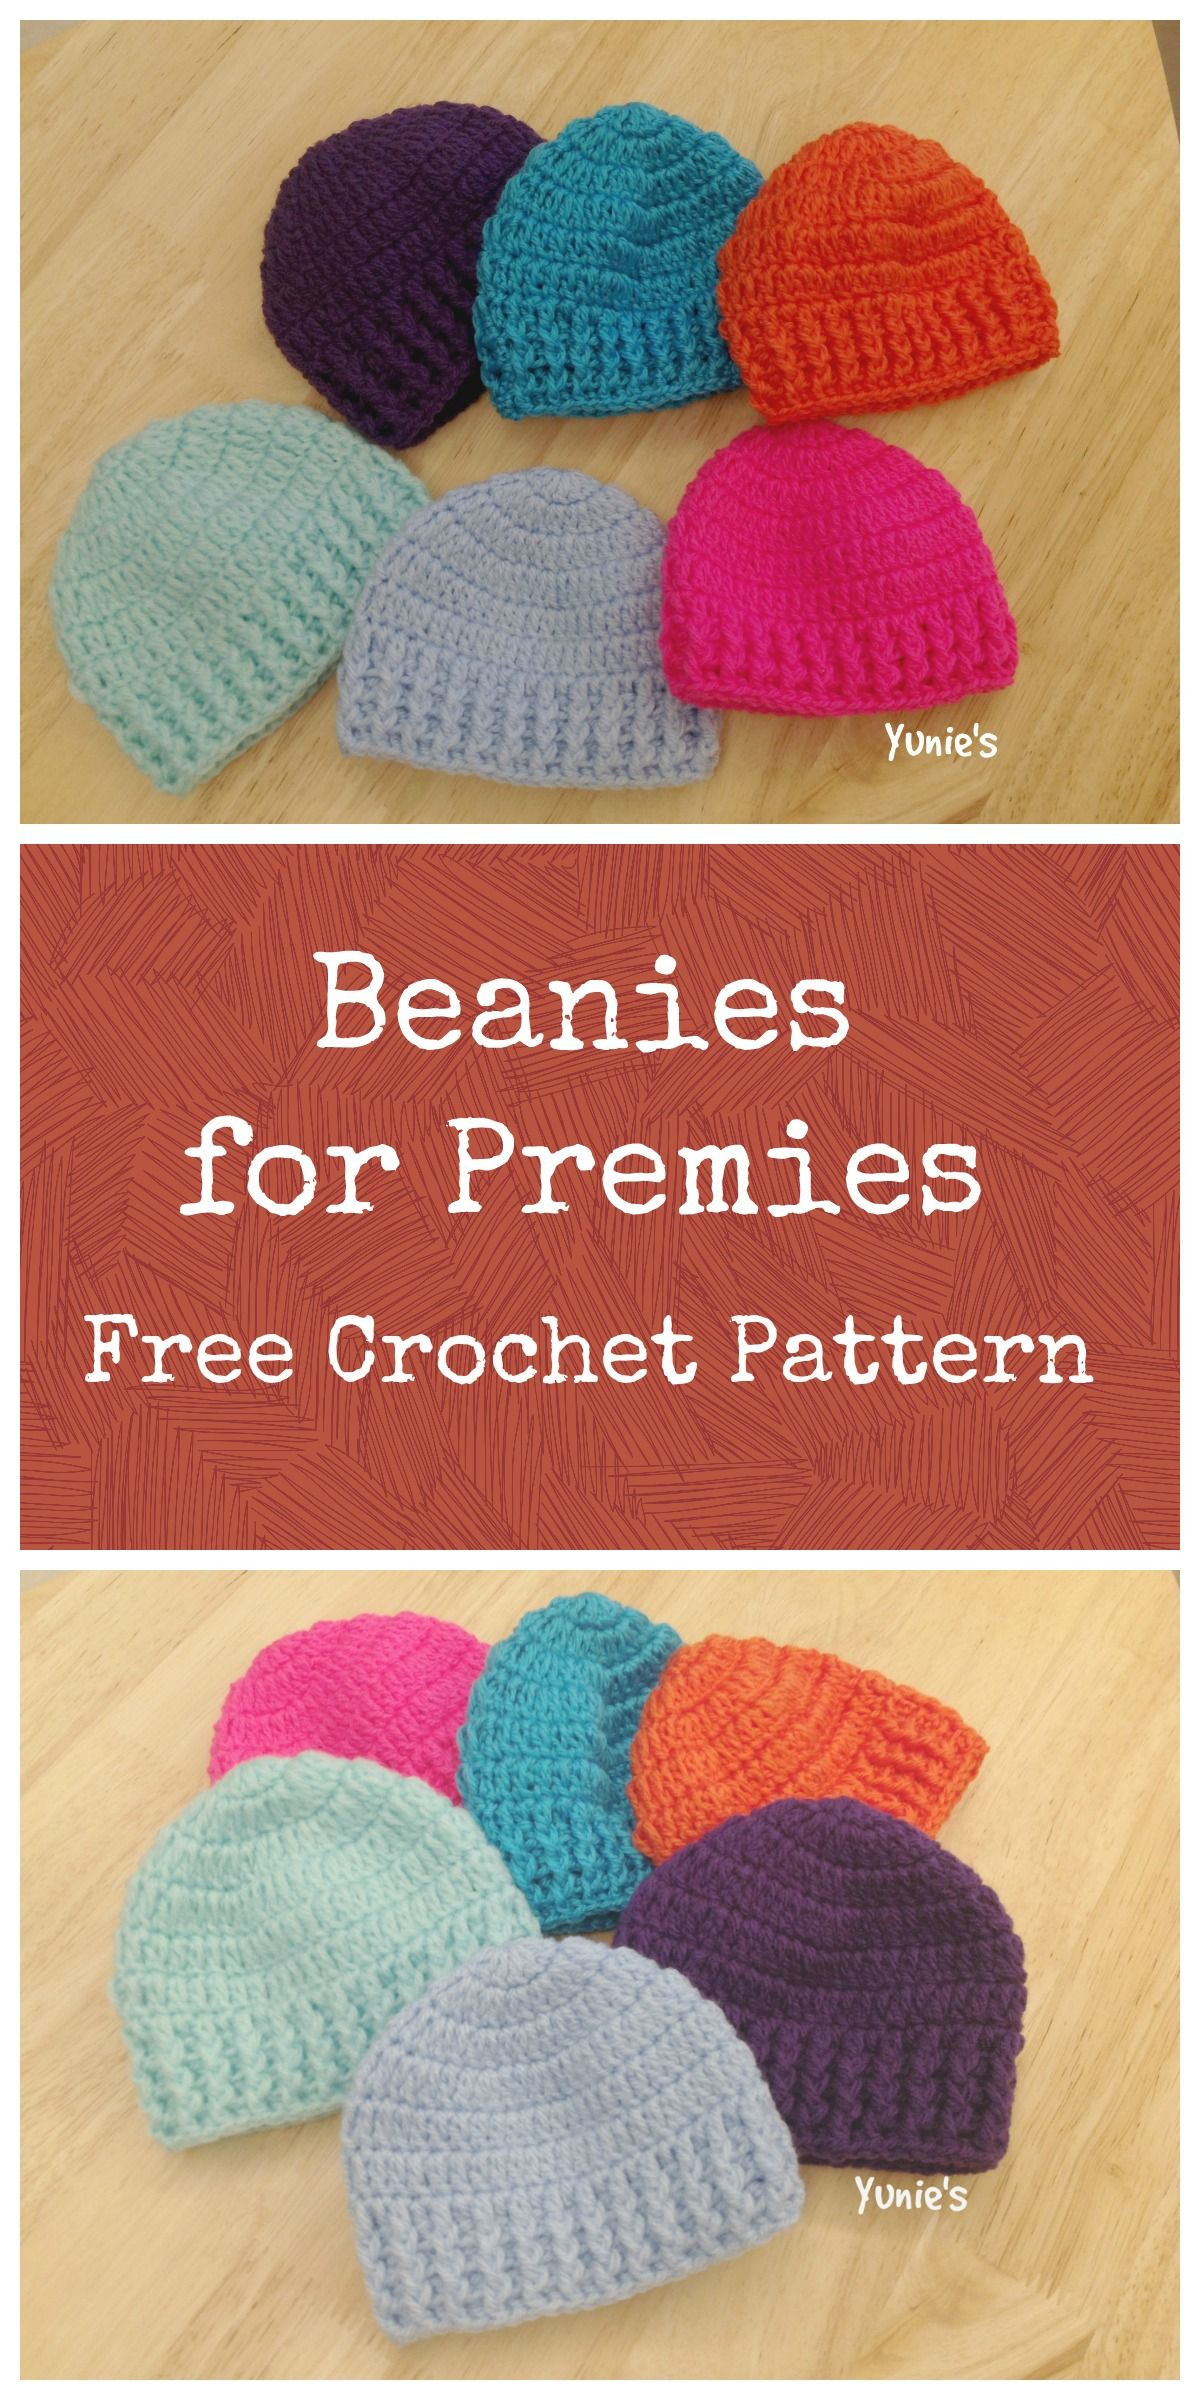 Beanies for premies a free and simple beanie designs for preemies free crochet pattern for premature babies a simple beanie design that you can complete within an hour bankloansurffo Images